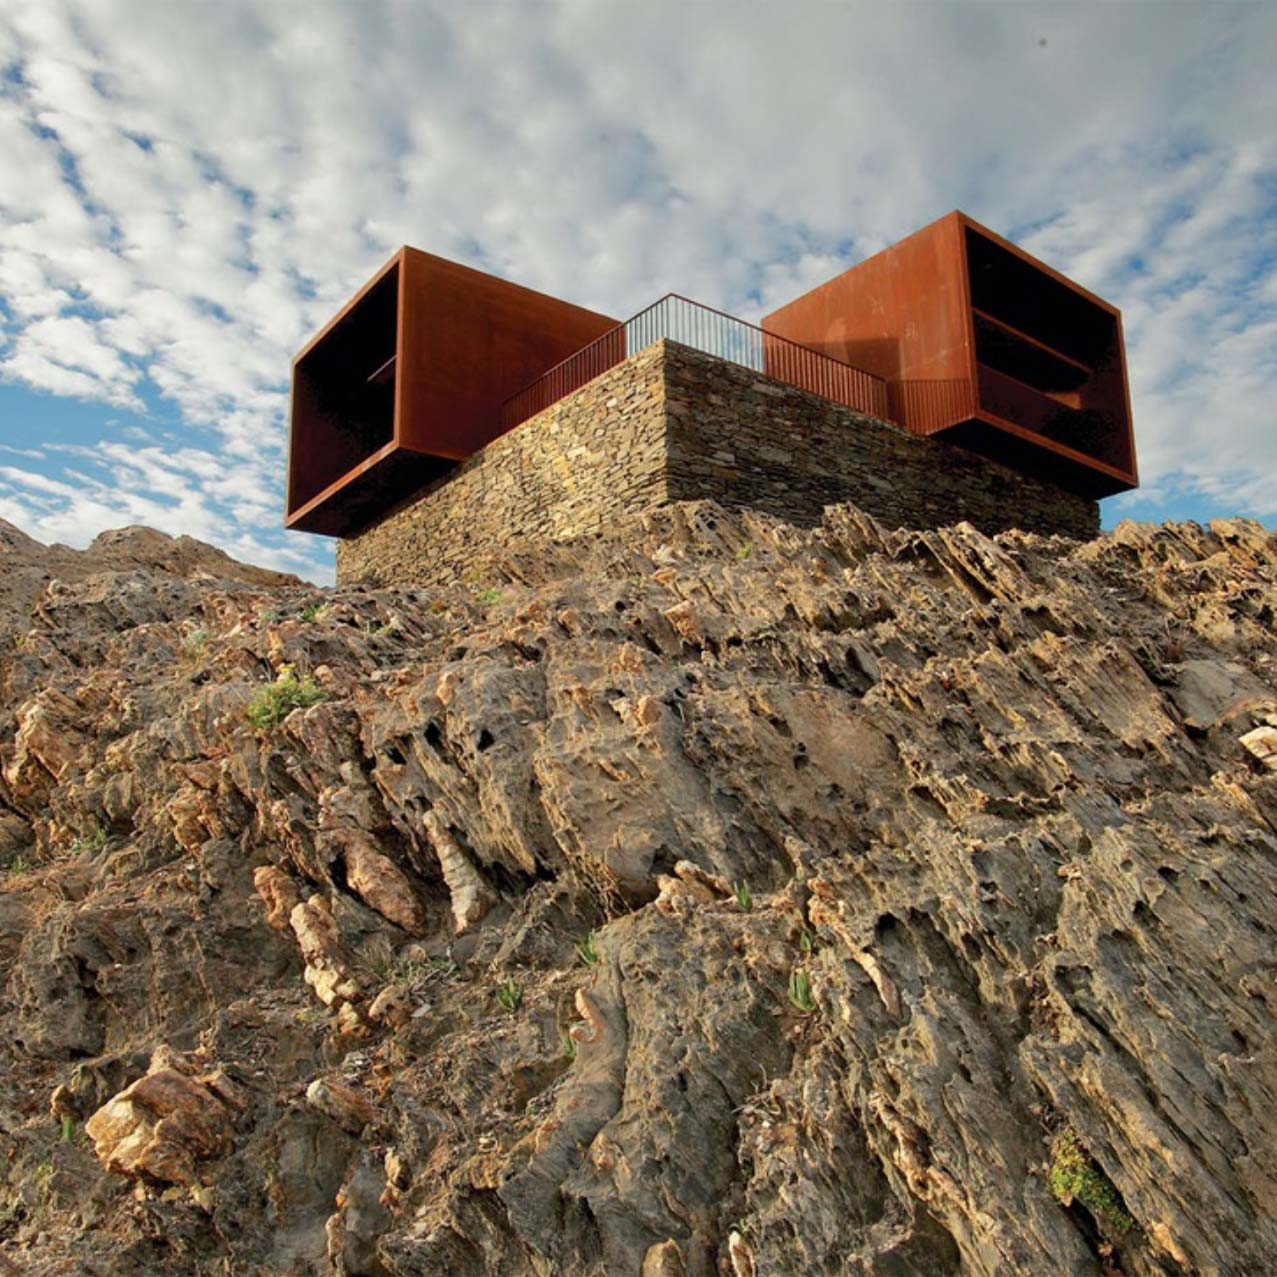 """Biennial against biennial: A profession in crisis?    Blog Entry for Architecture Australia   The Landscape Architecture Biennial highlighted the balancing act between a clear definition of the profession and the value of being one of the few remaining generalist professions. More than ever, holistic expertise is required, as design needs to be """"undisciplined."""" There is an urgent need for our profession to pioneer into the area of infrastructure and other realms, and move outside the usual occupation of landscape architecture."""